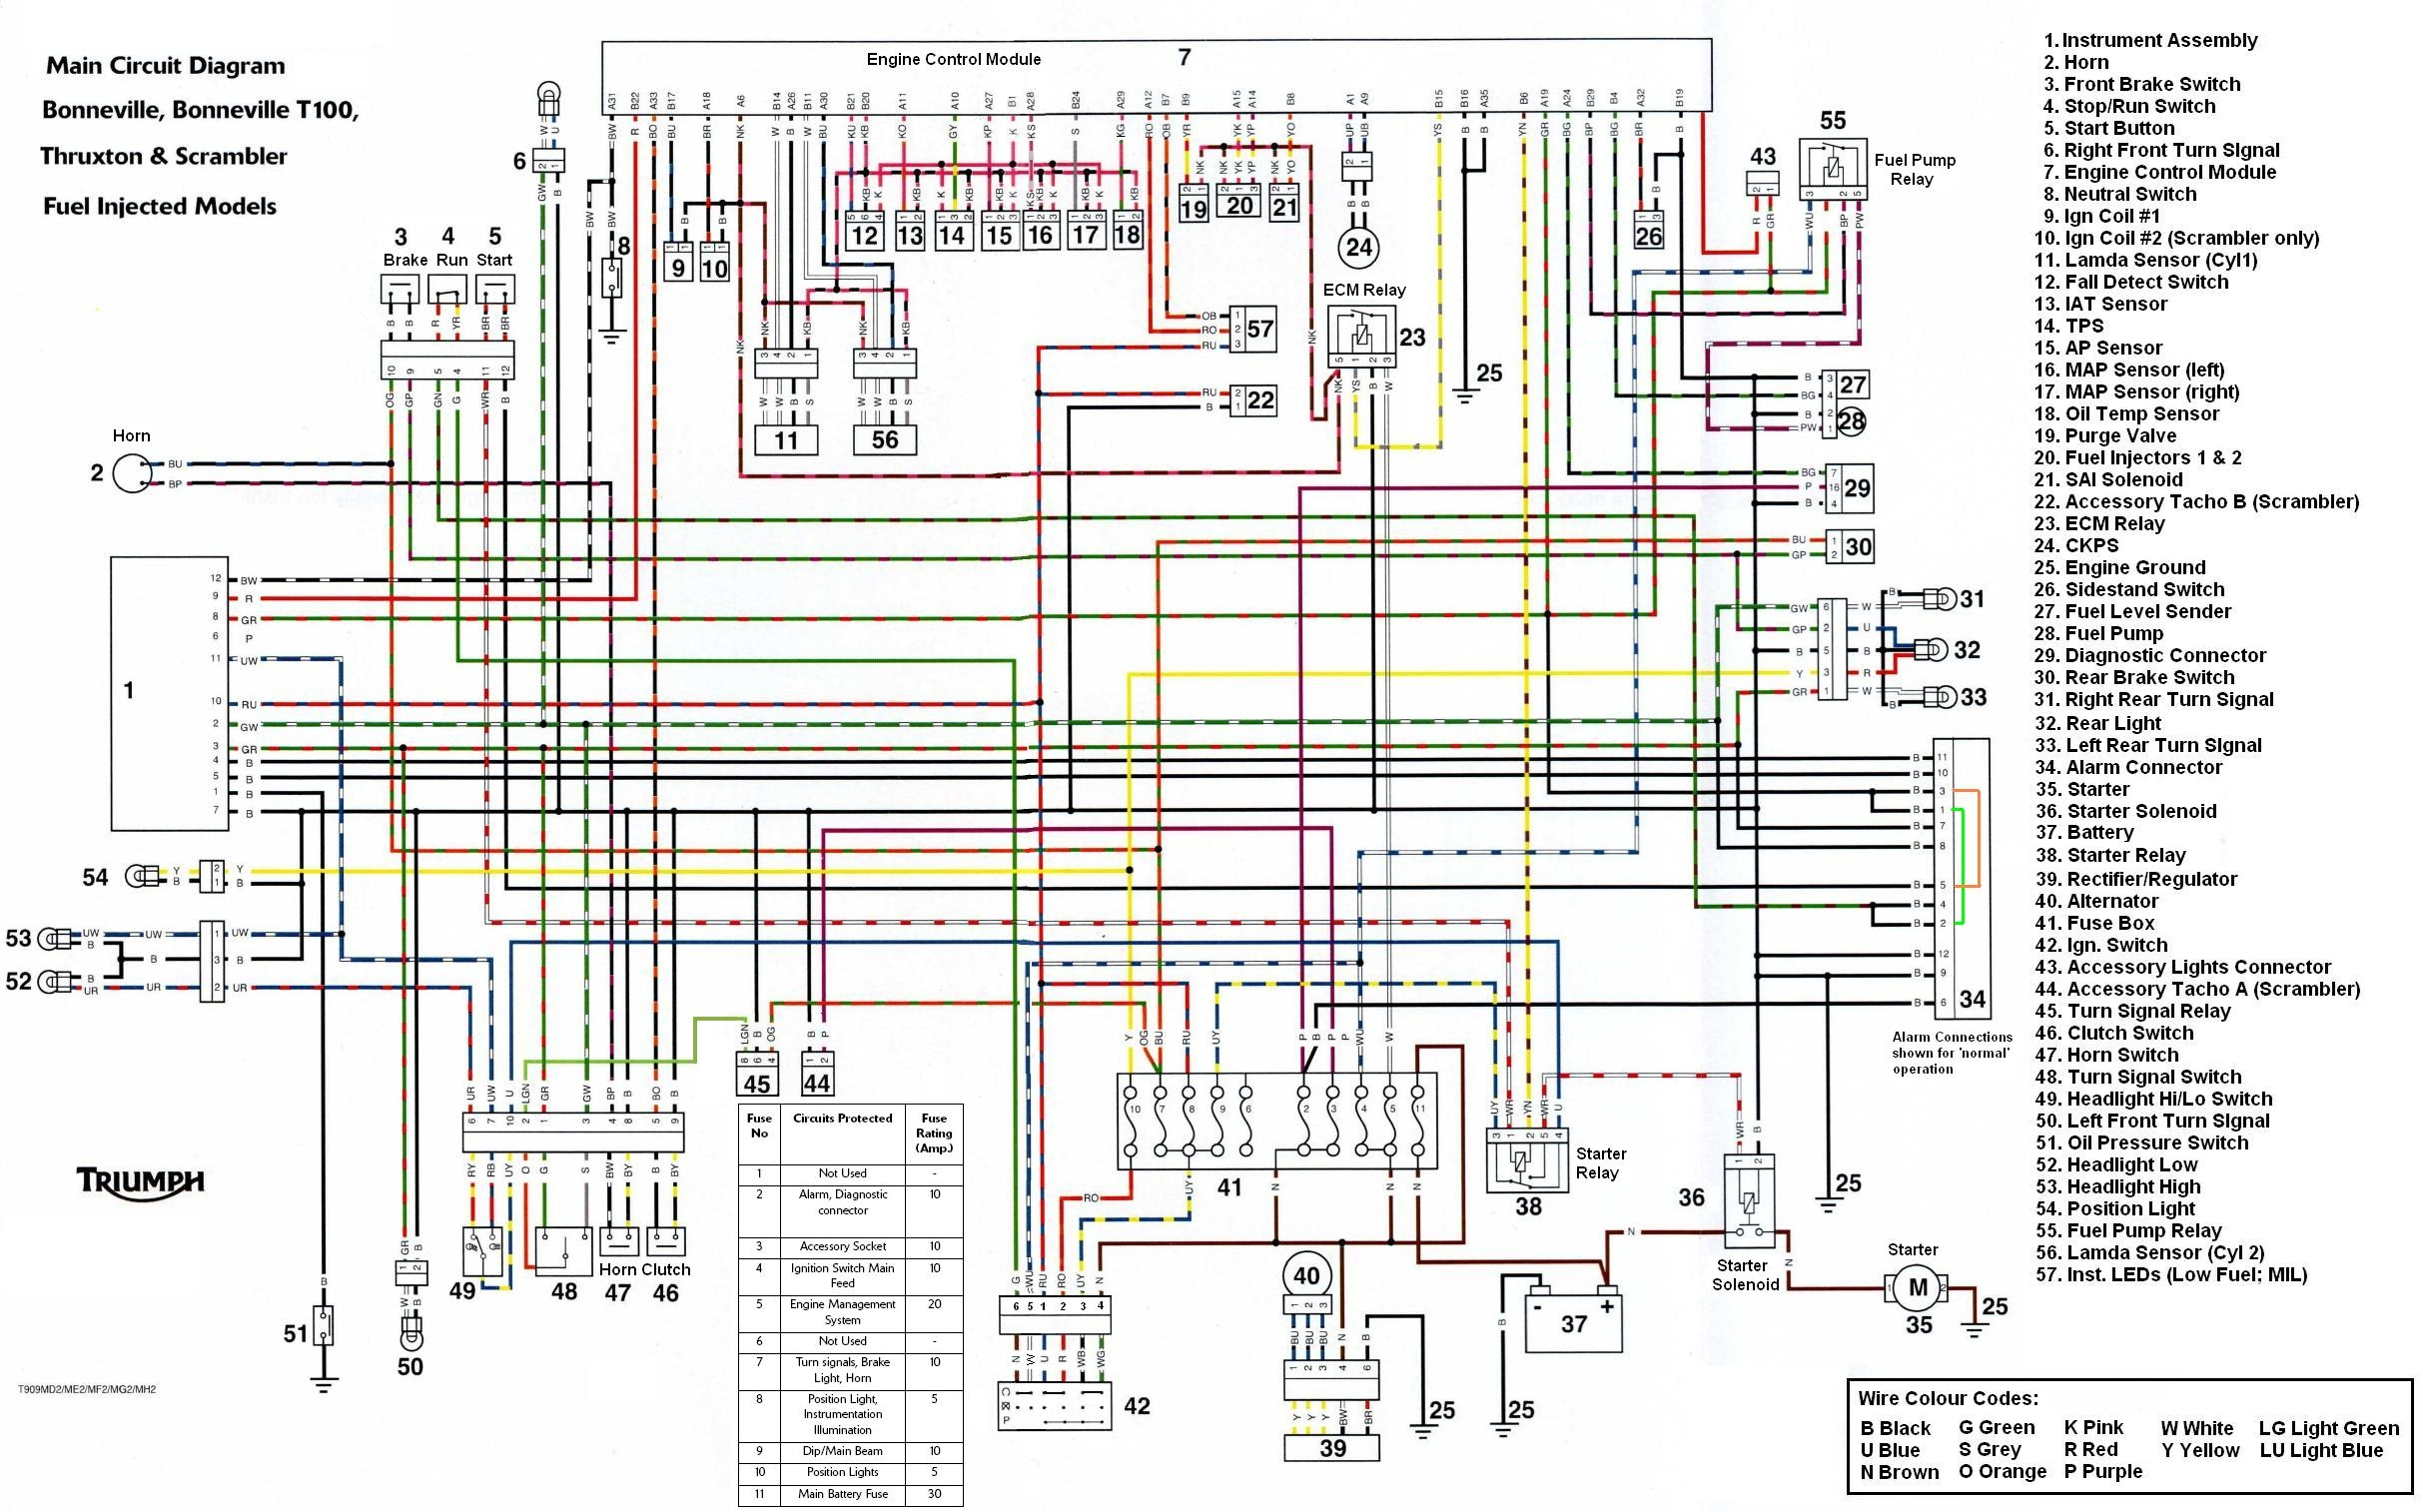 Solar Light Circuit Diagram Great Design Of Wiring Emerson 1081 230v Images Gallery